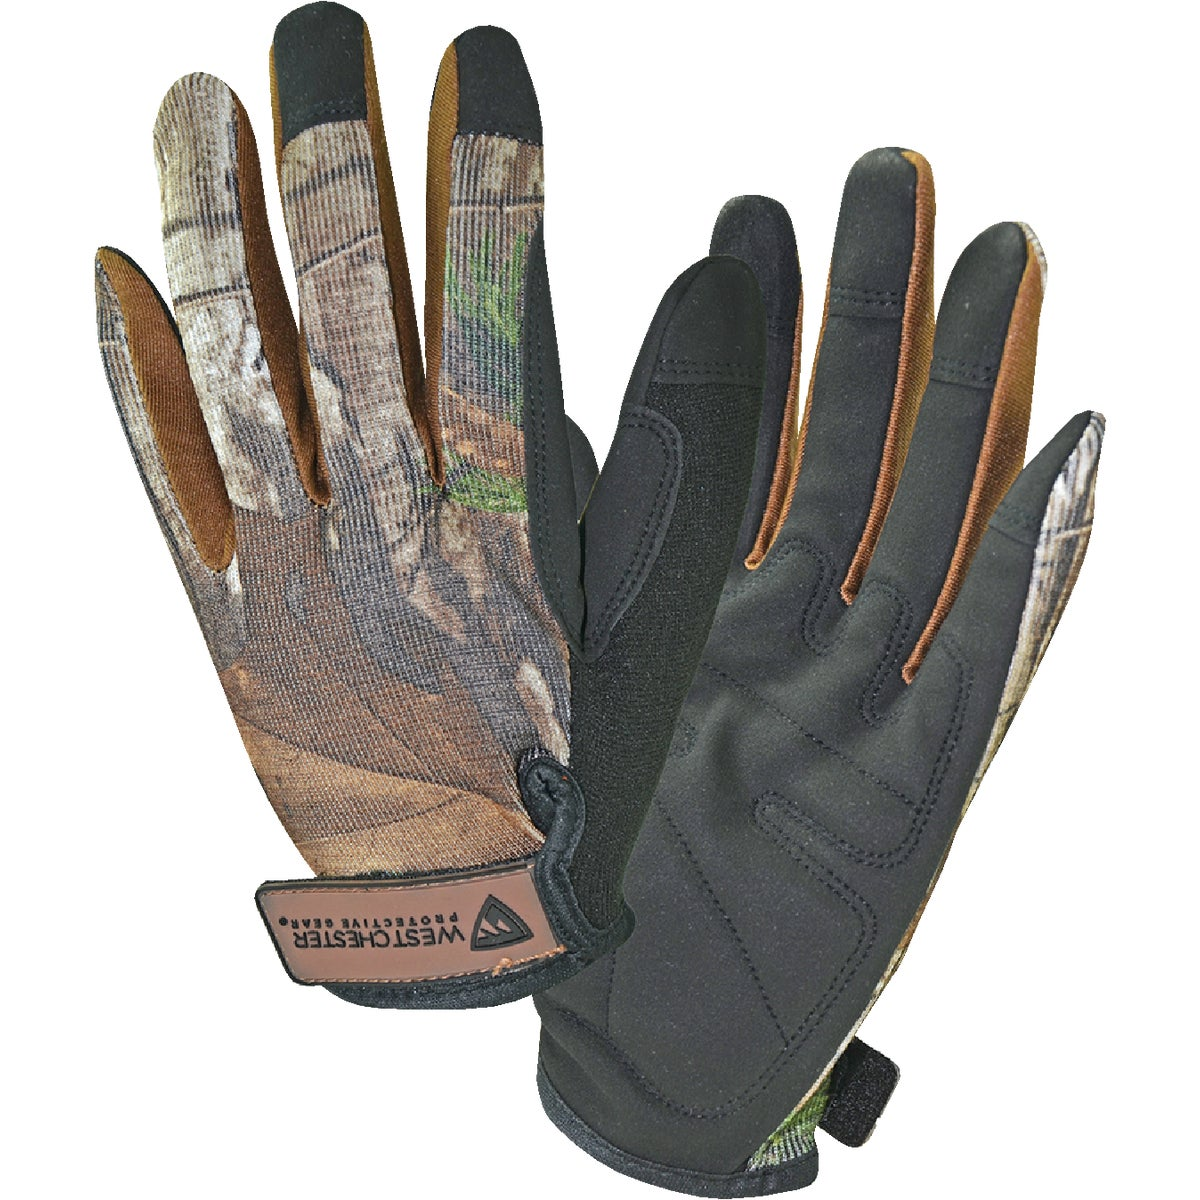 XL CAMO BACKCONTRY GLOVE - M125XL by Custom Leathercraft